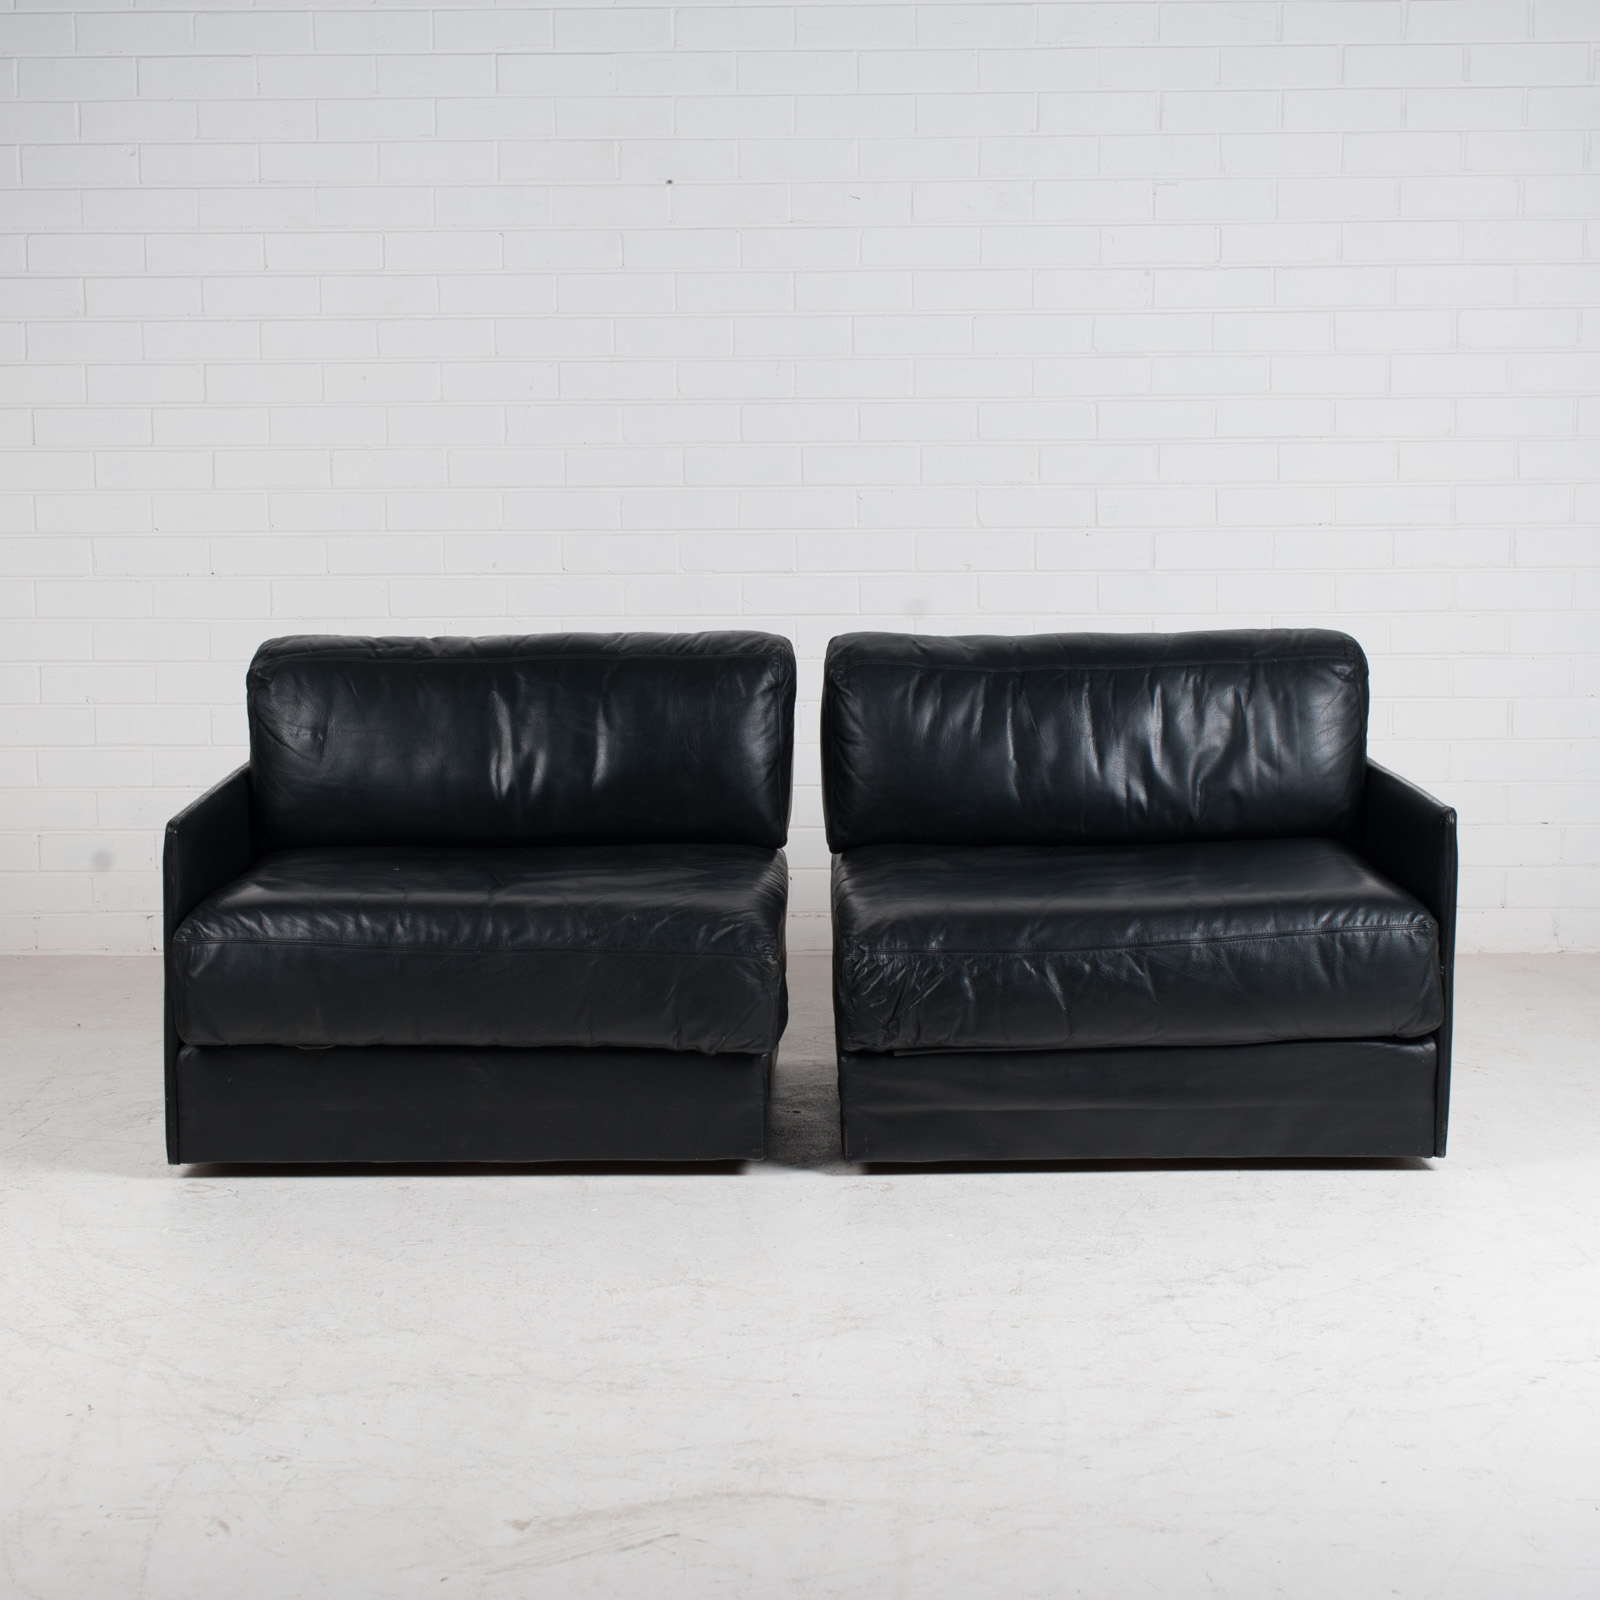 Ds 76 2 Seat Sofa By De Sede In Black Leather 1970s Switzerland 02